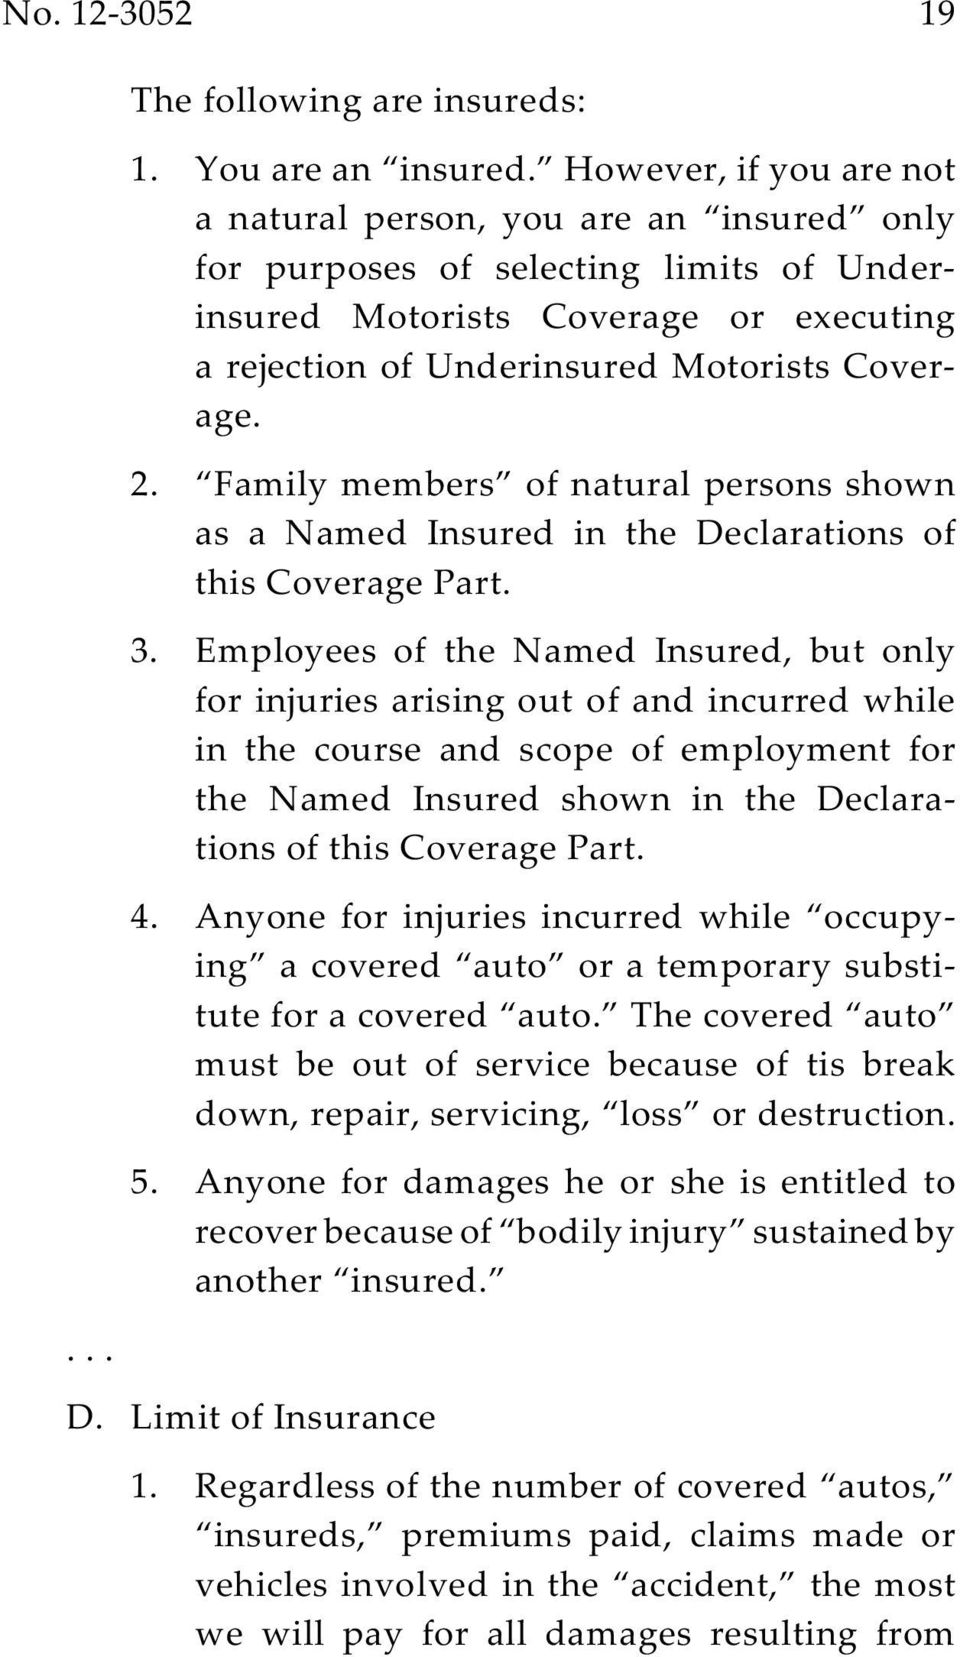 Family members of natural persons shown as a Named Insured in the Declarations of this Coverage Part. 3.